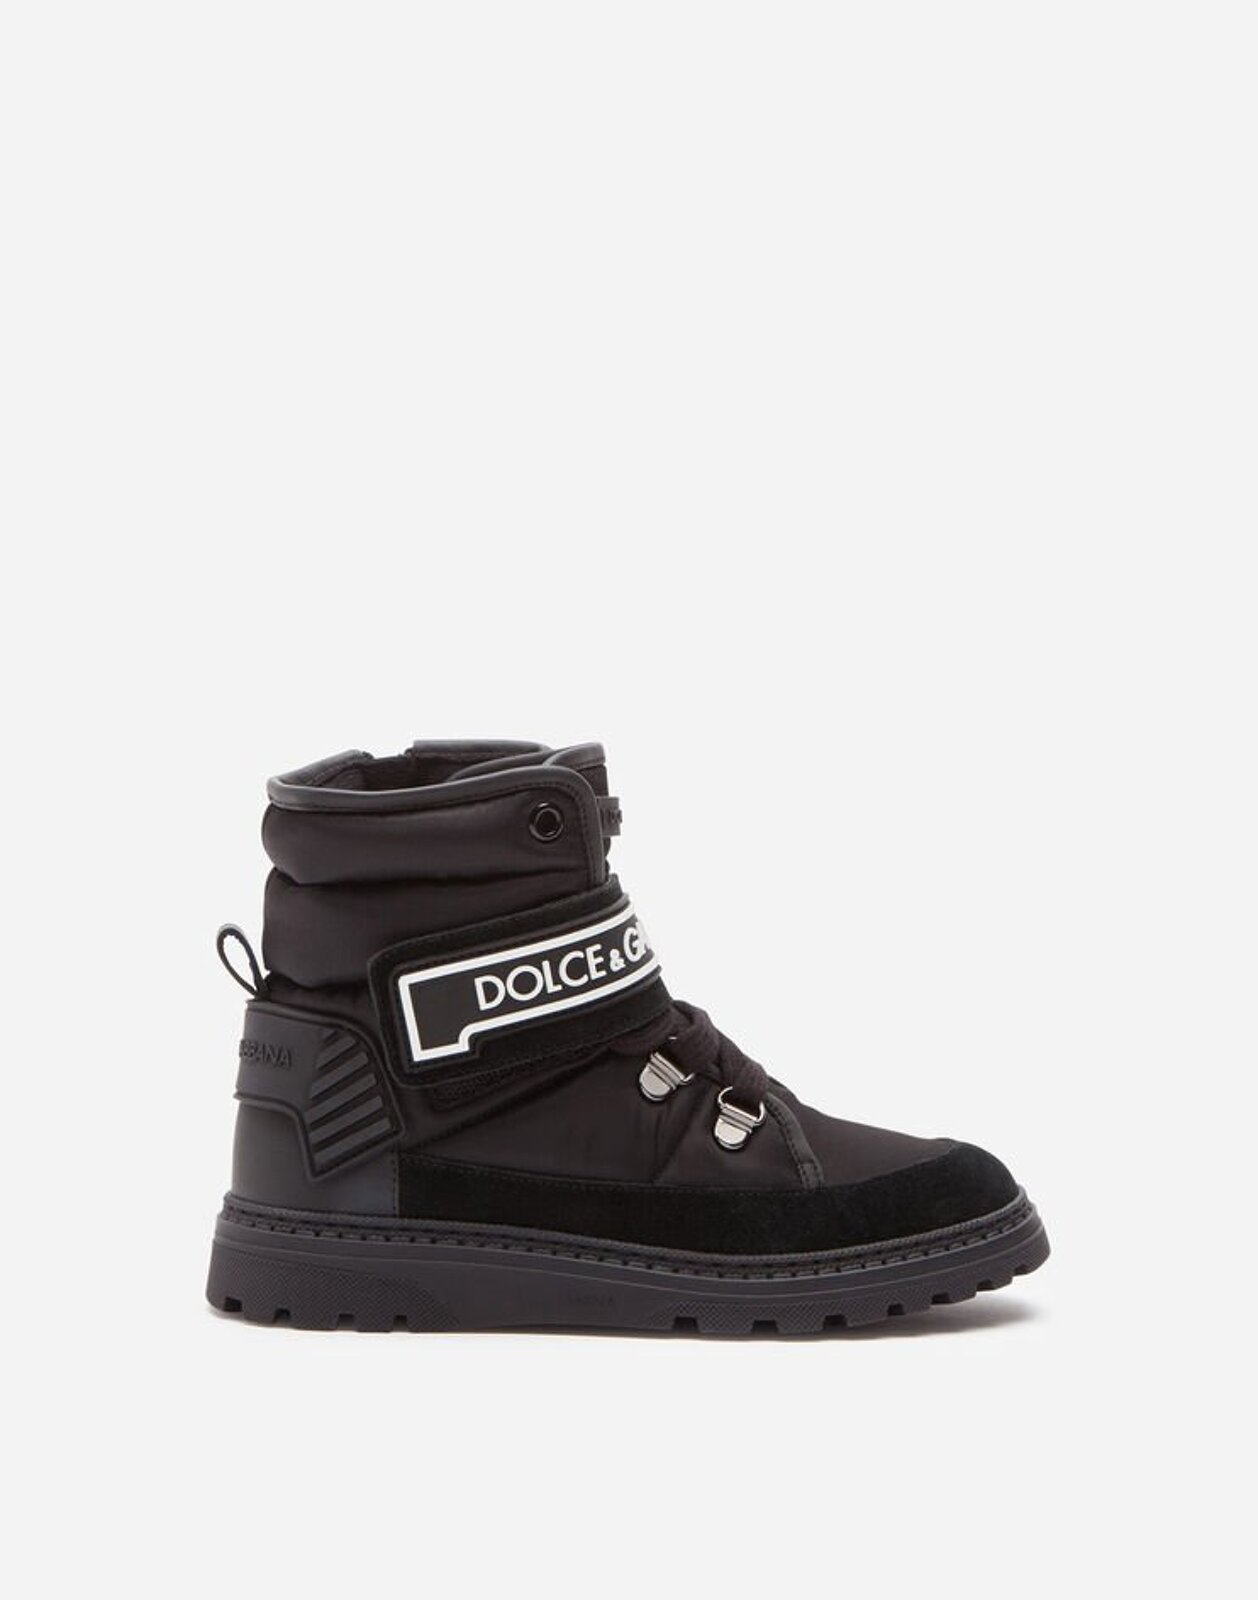 Stivaletto In Nylon E Crosta Con Logo - Dolce & Gabbana Junior